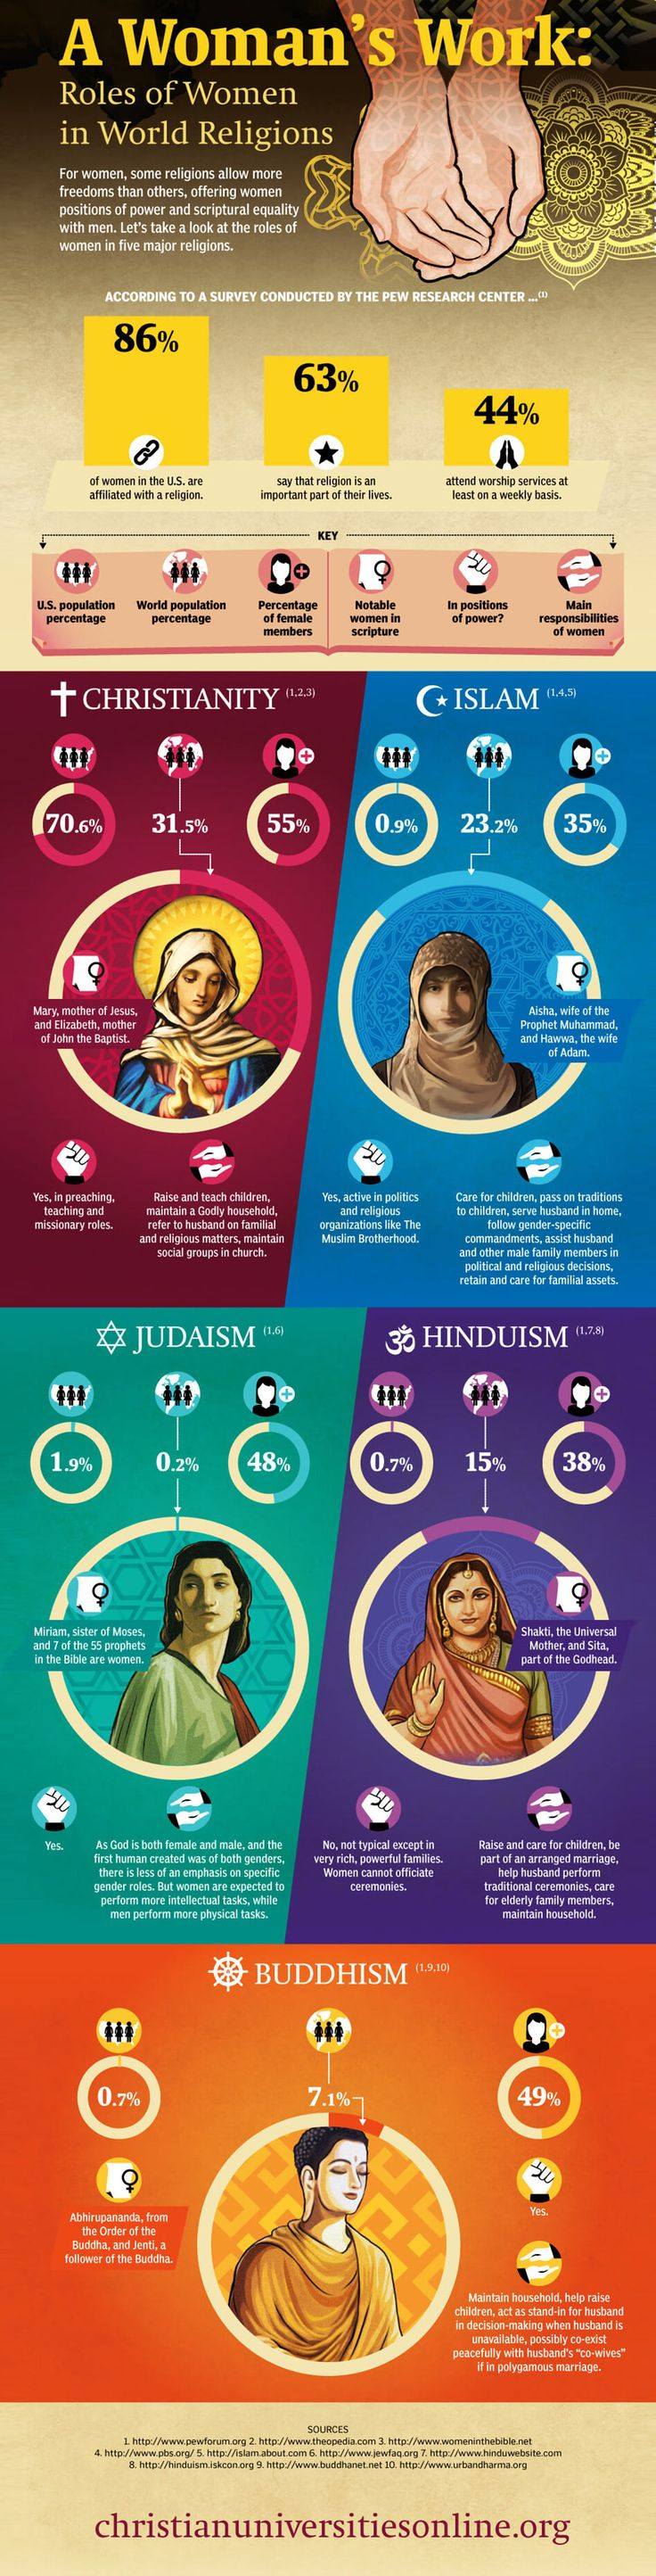 Roles of Women in World Religions Infographic #religion